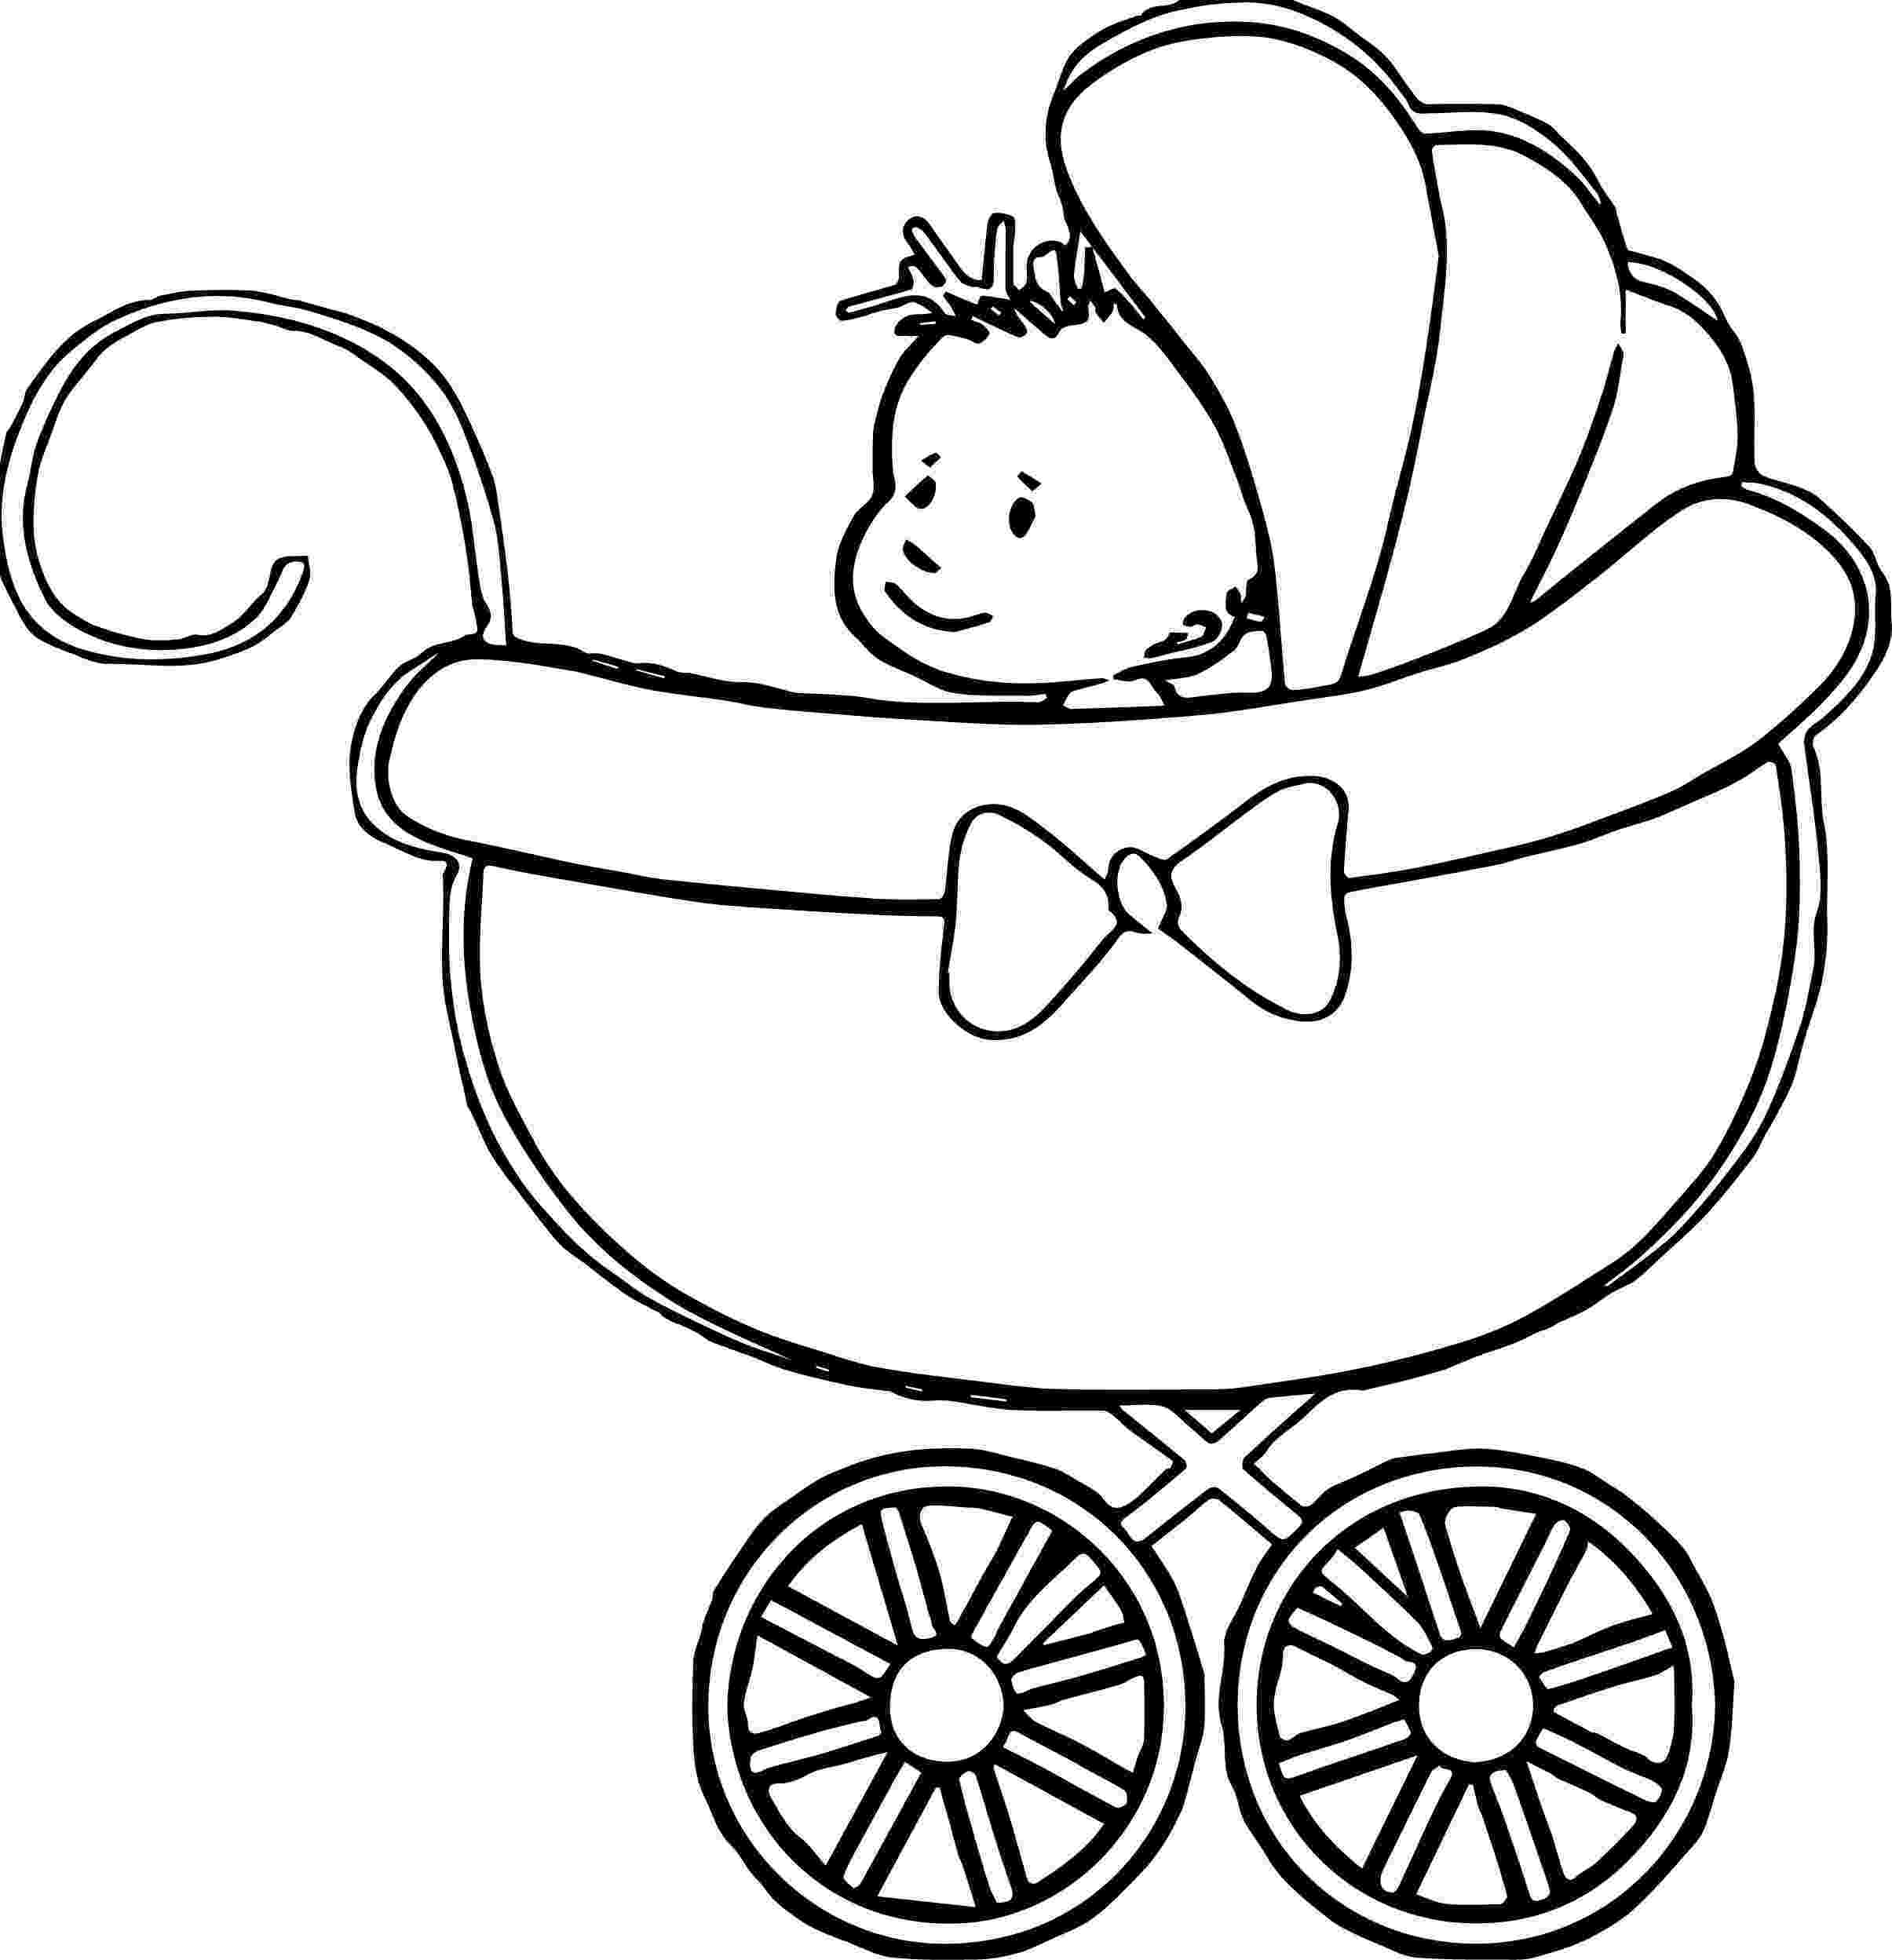 coloring pages baby free printable baby coloring pages for kids baby pages coloring